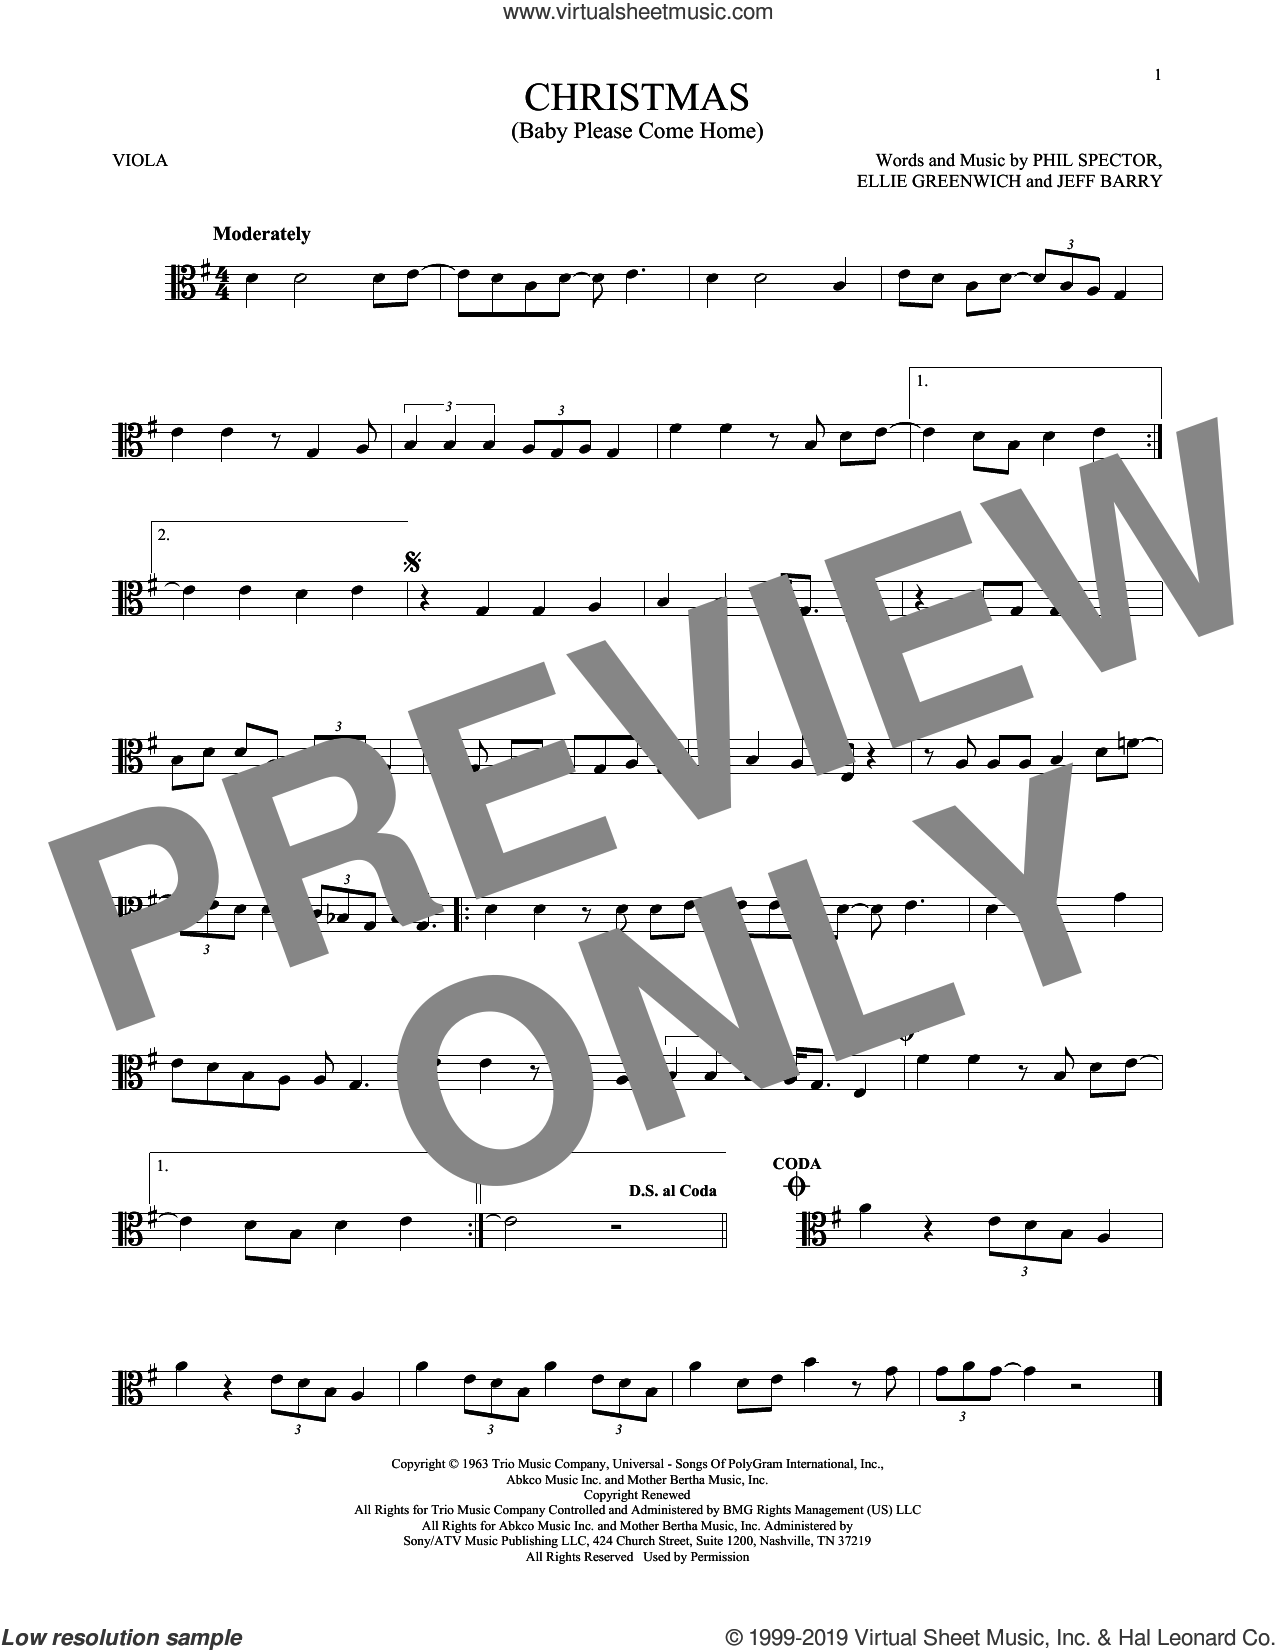 Christmas (Baby Please Come Home) sheet music for viola solo by Mariah Carey, Ellie Greenwich, Jeff Barry and Phil Spector, intermediate skill level